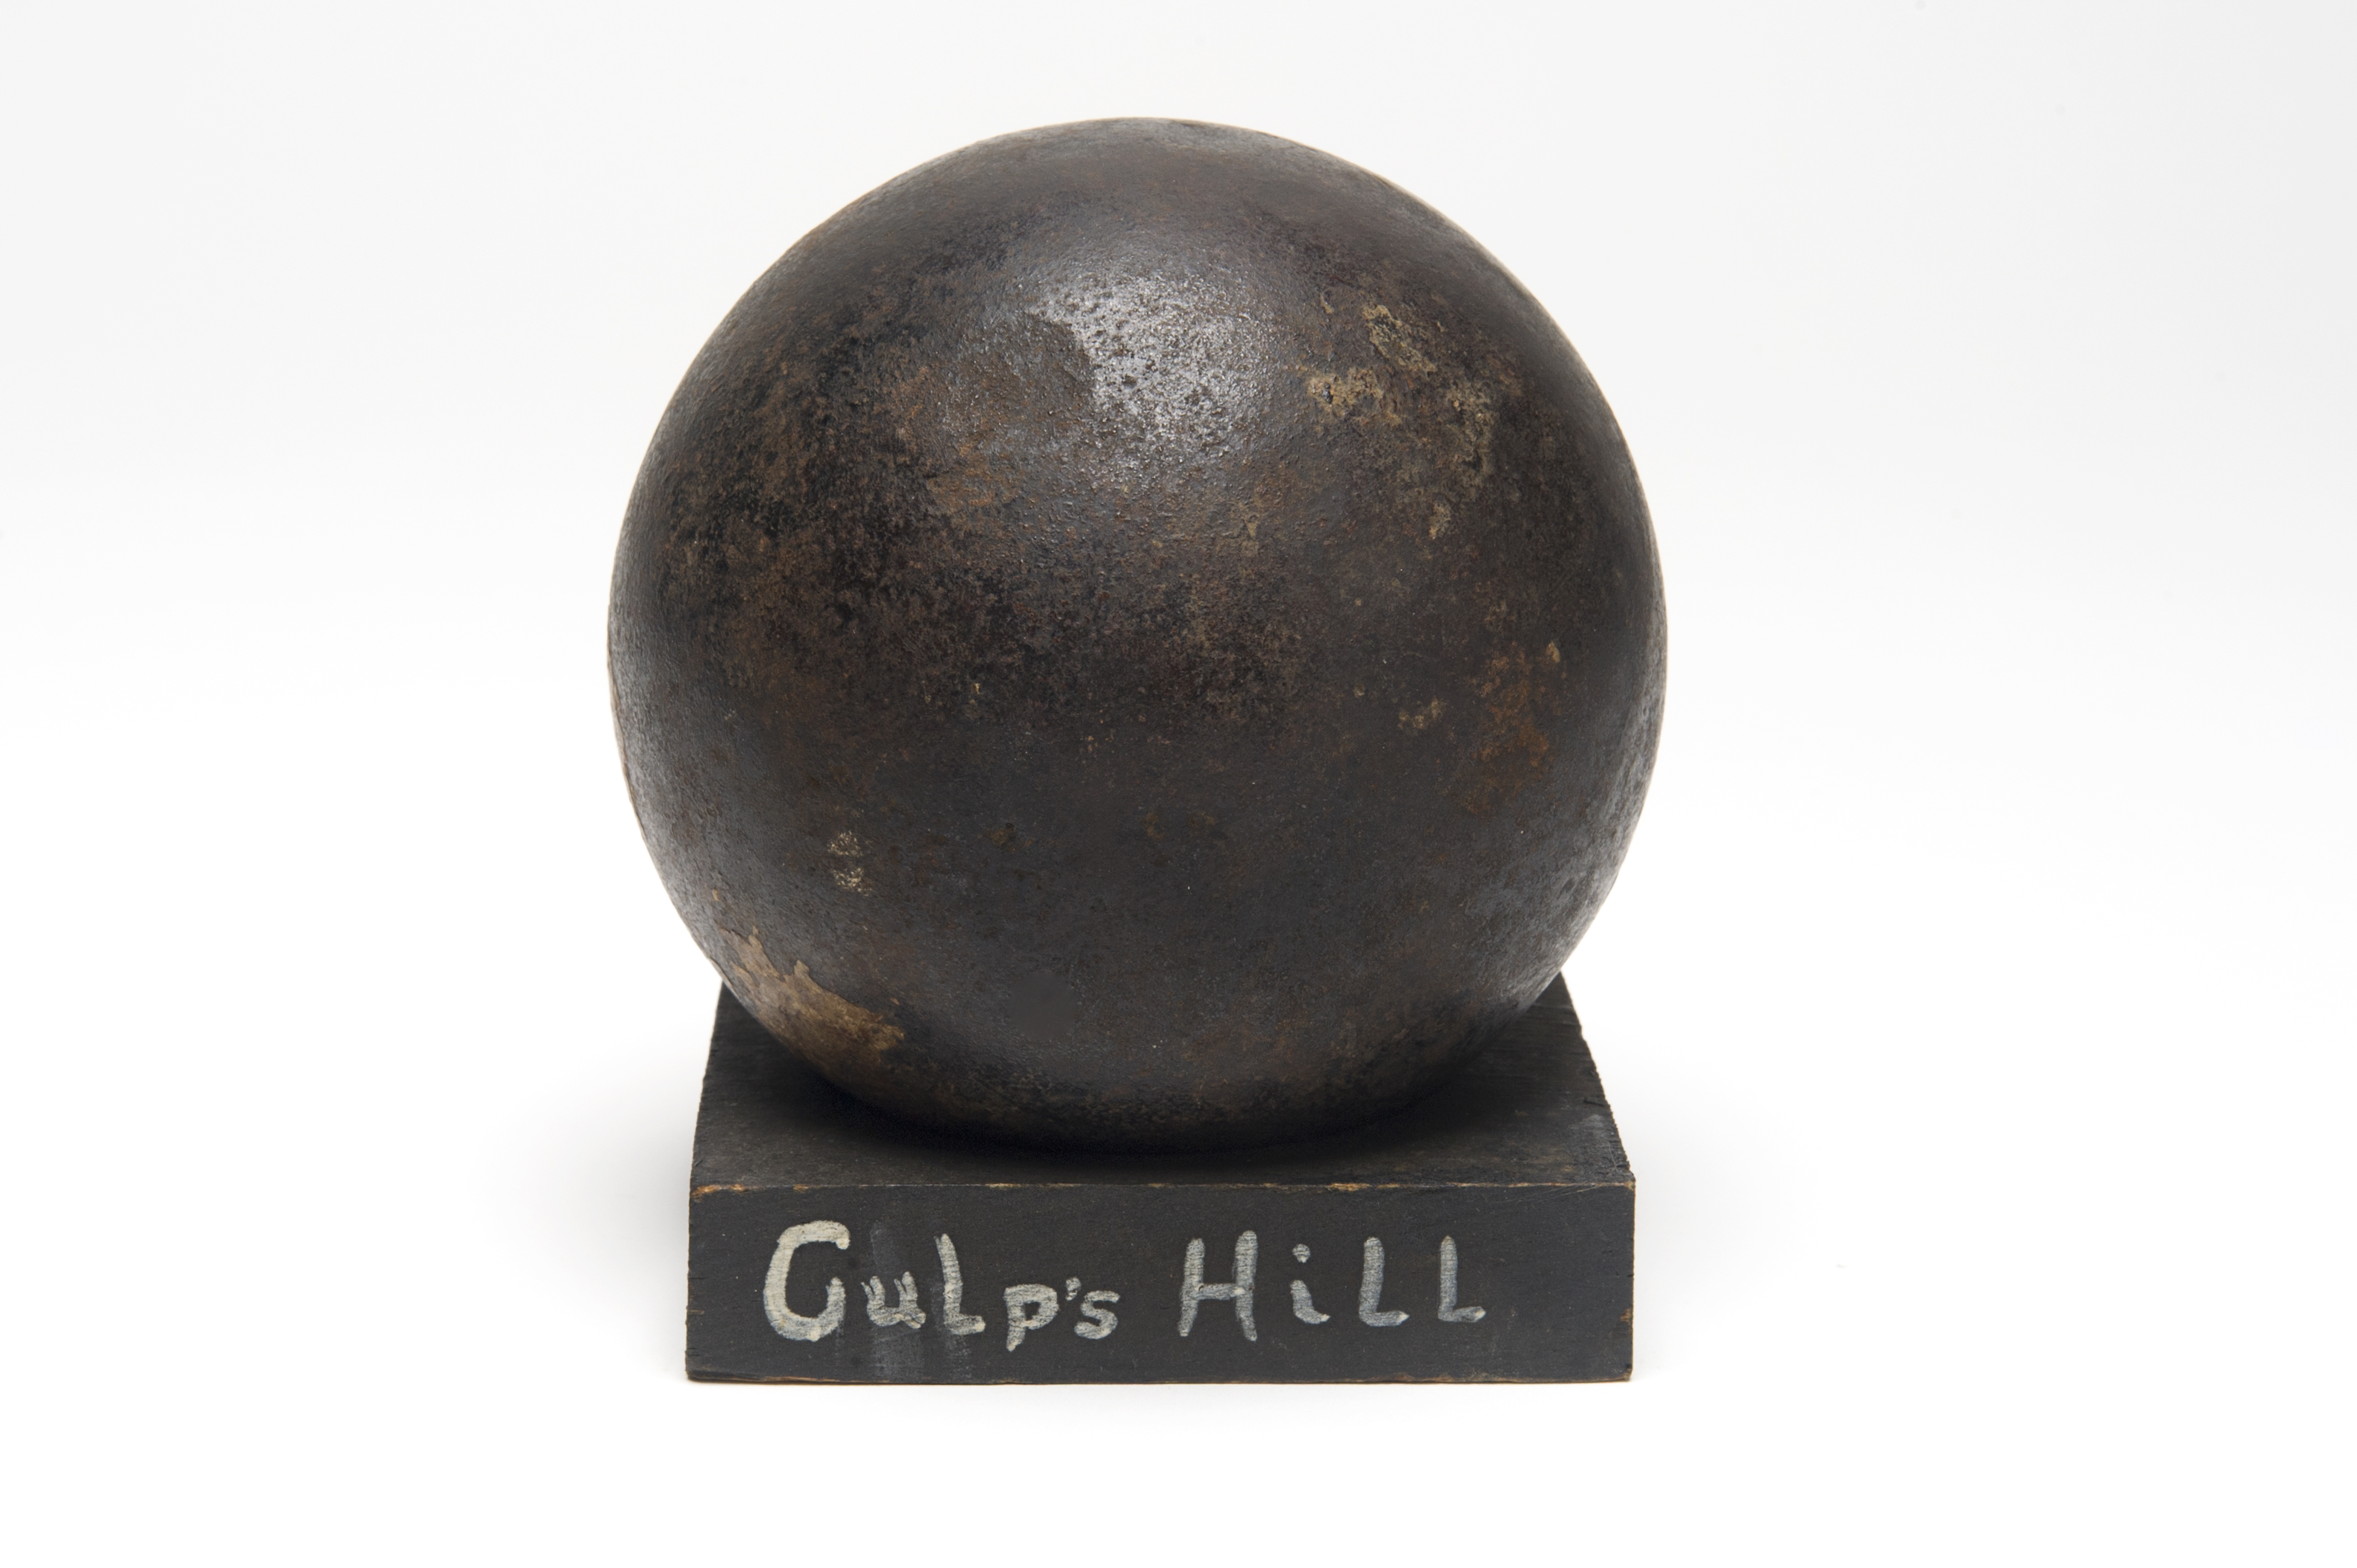 Cannonball_CulpsHill